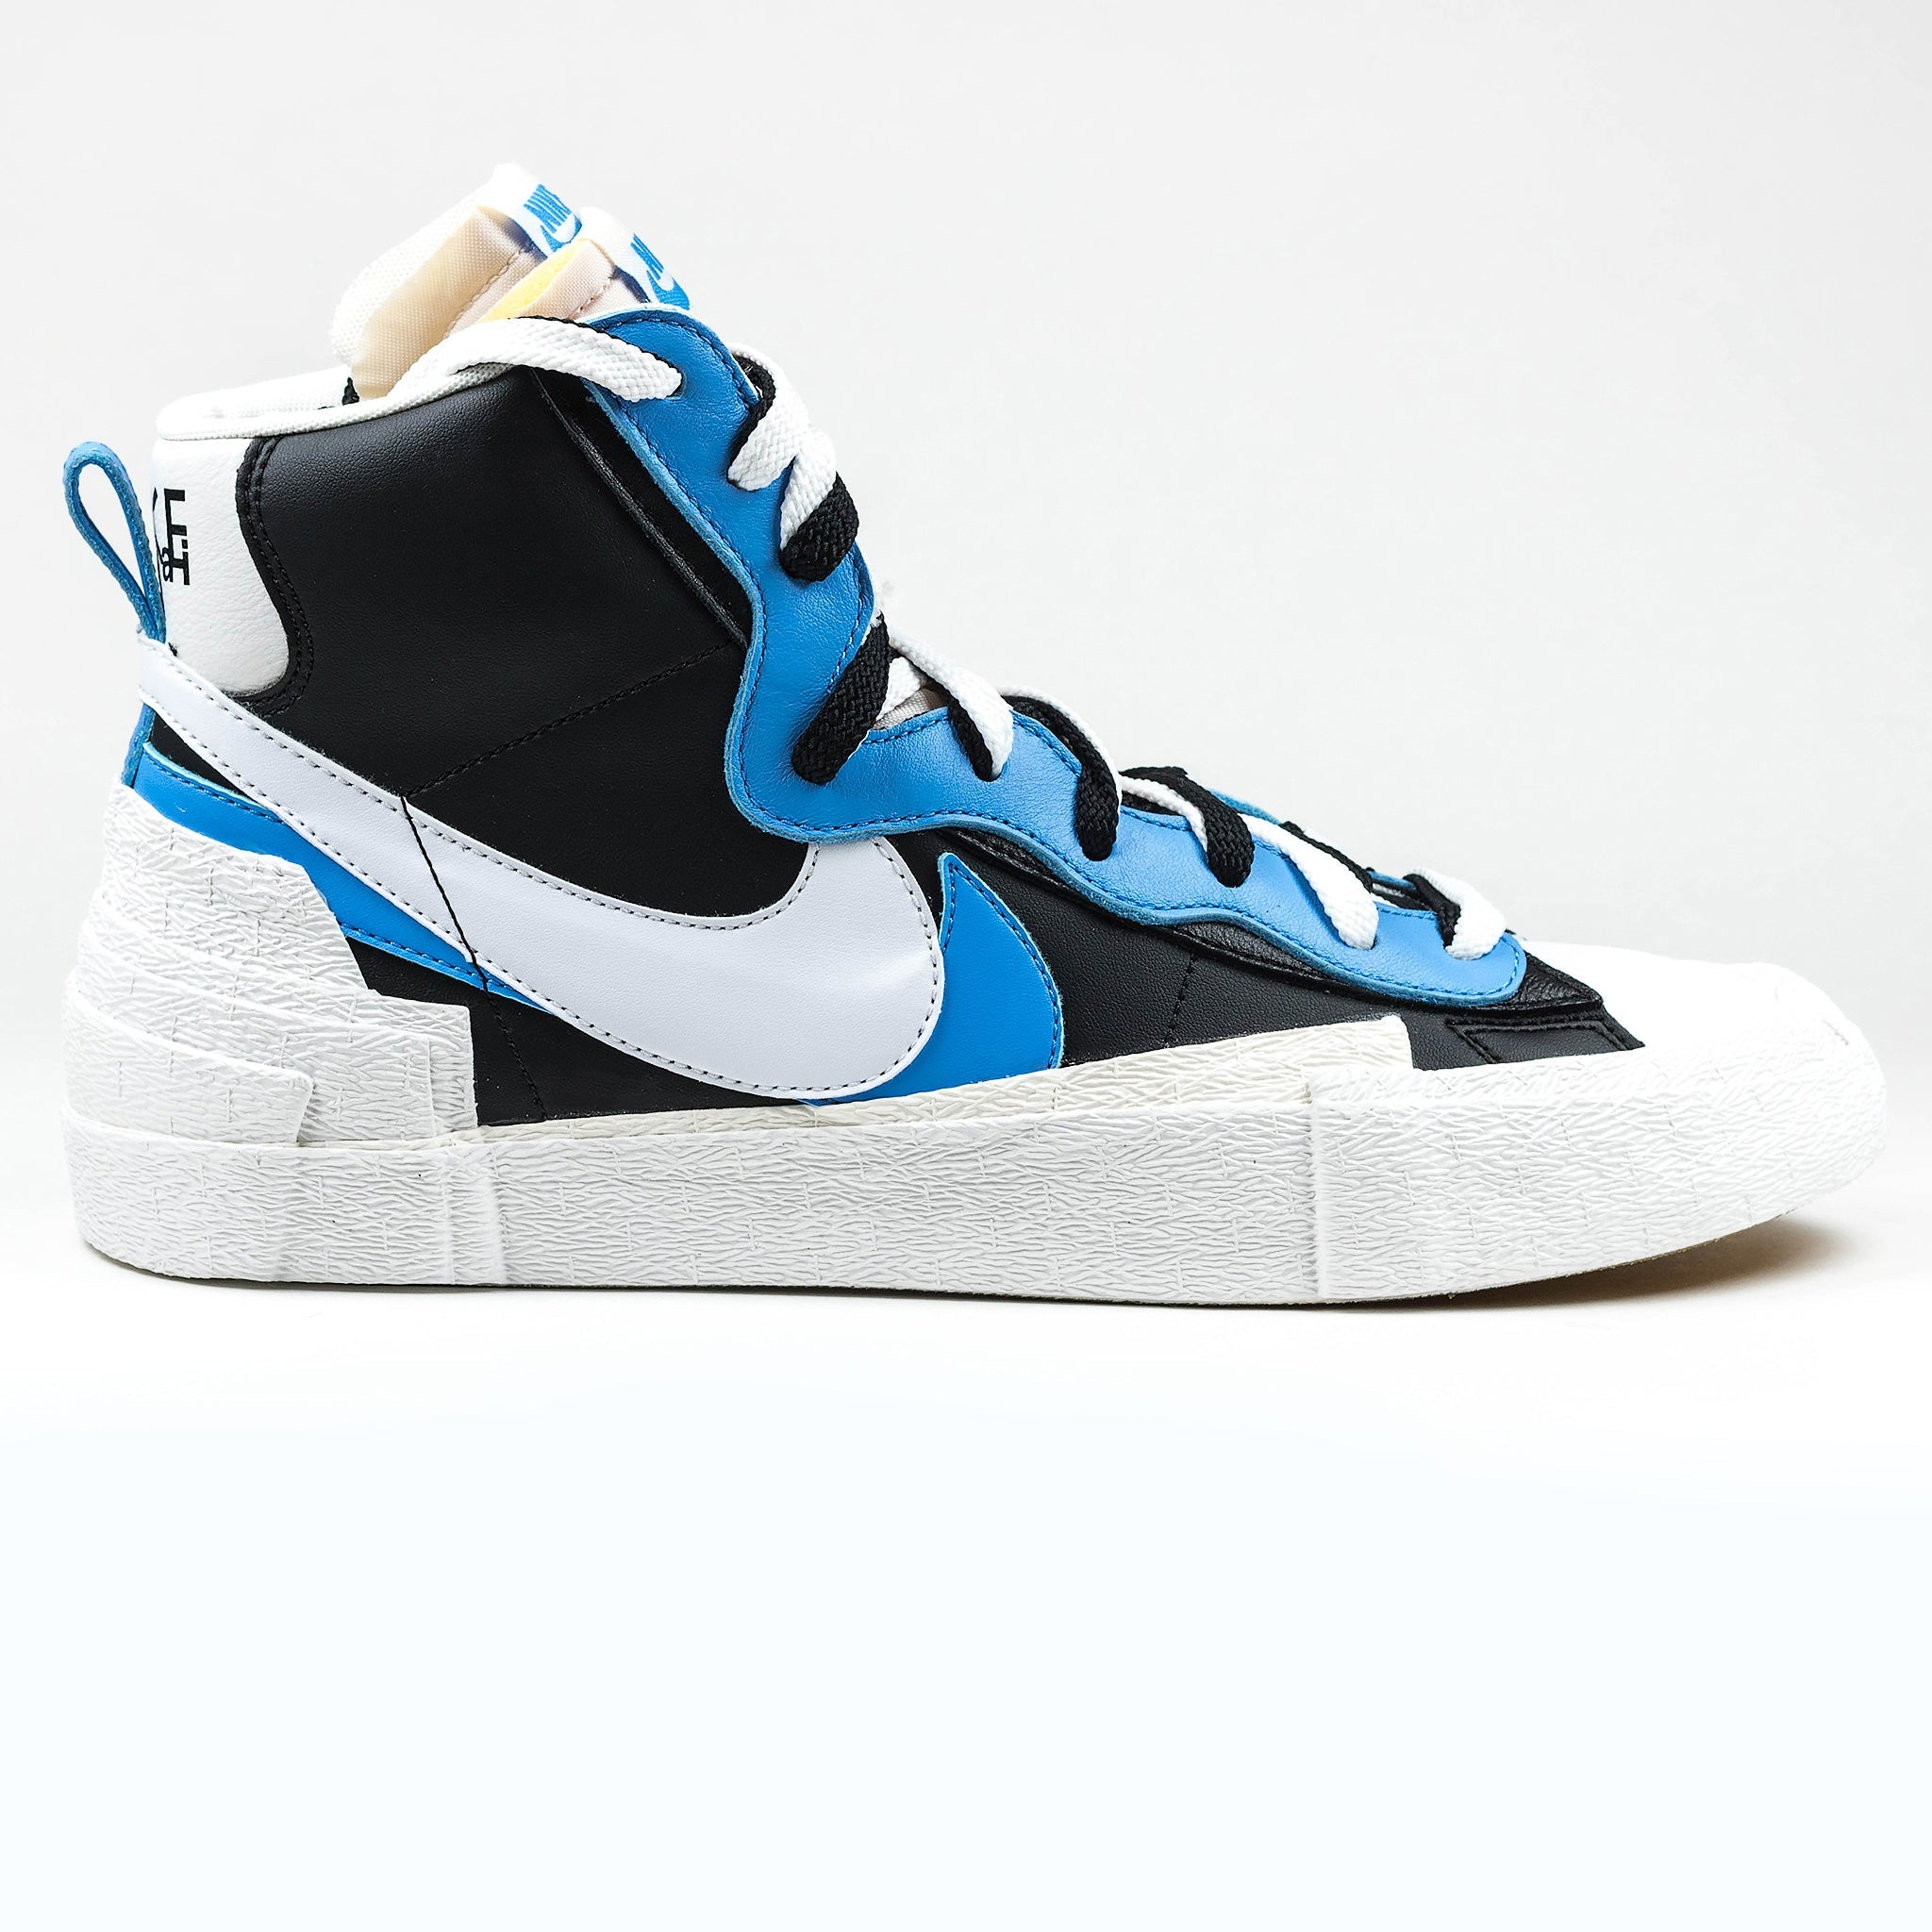 Nike x Sacai Blazer High White Black Legend Blue Sneaker